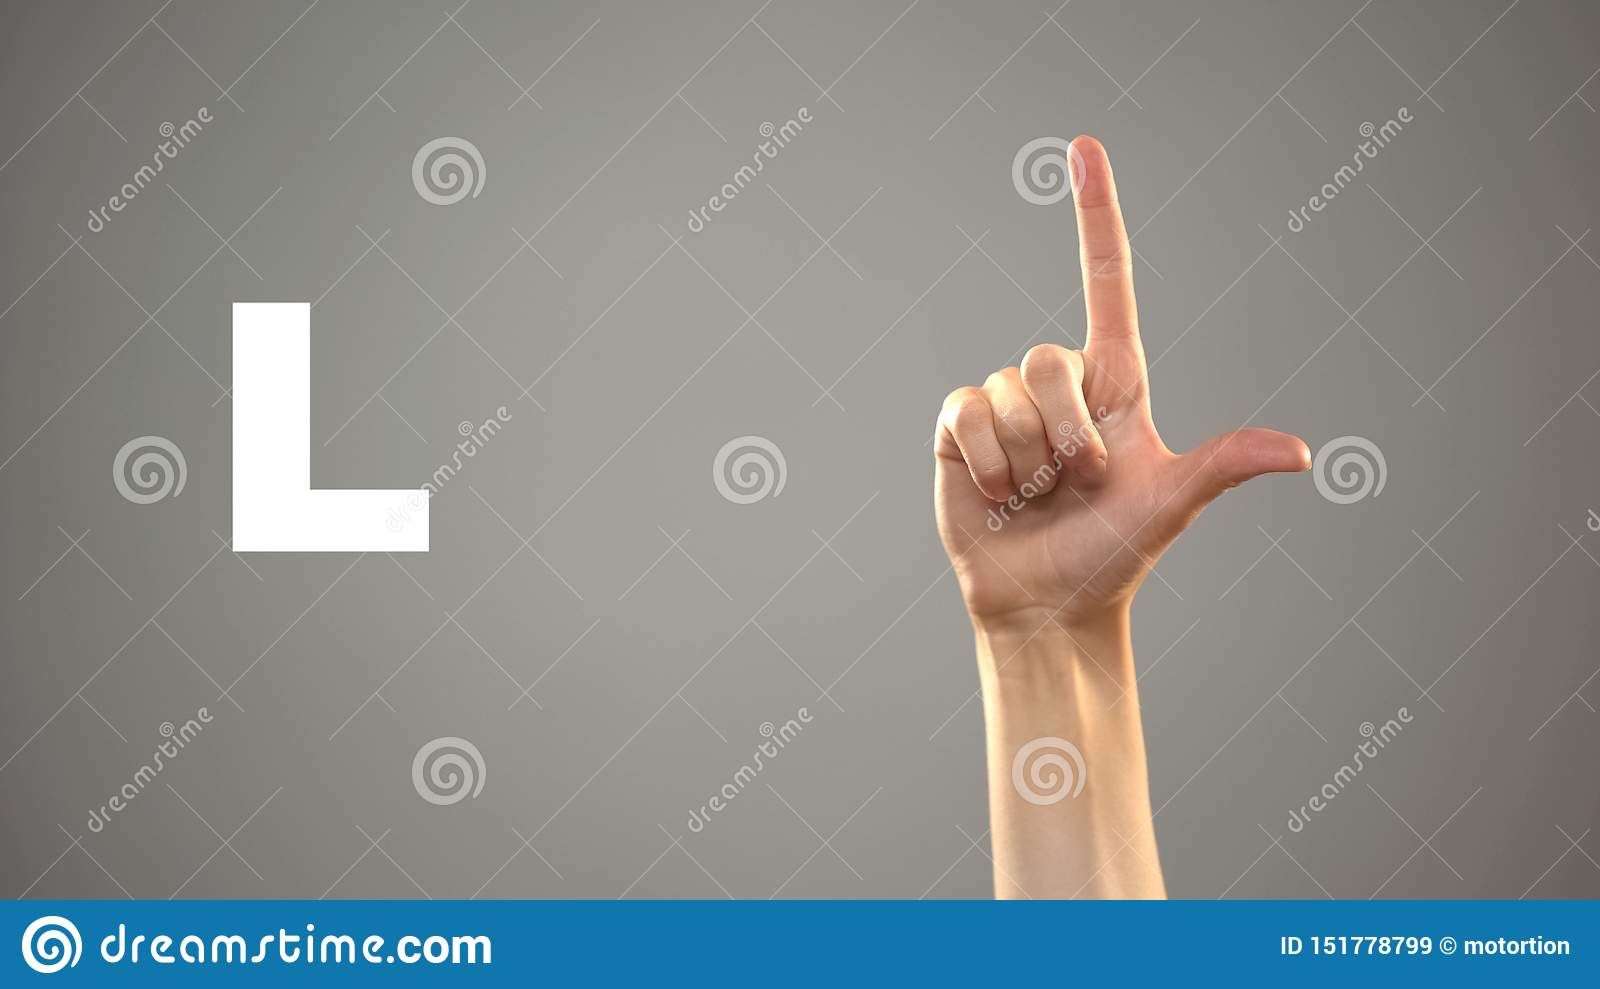 Letter L in sign language, hand on background, communication for deaf, lesson